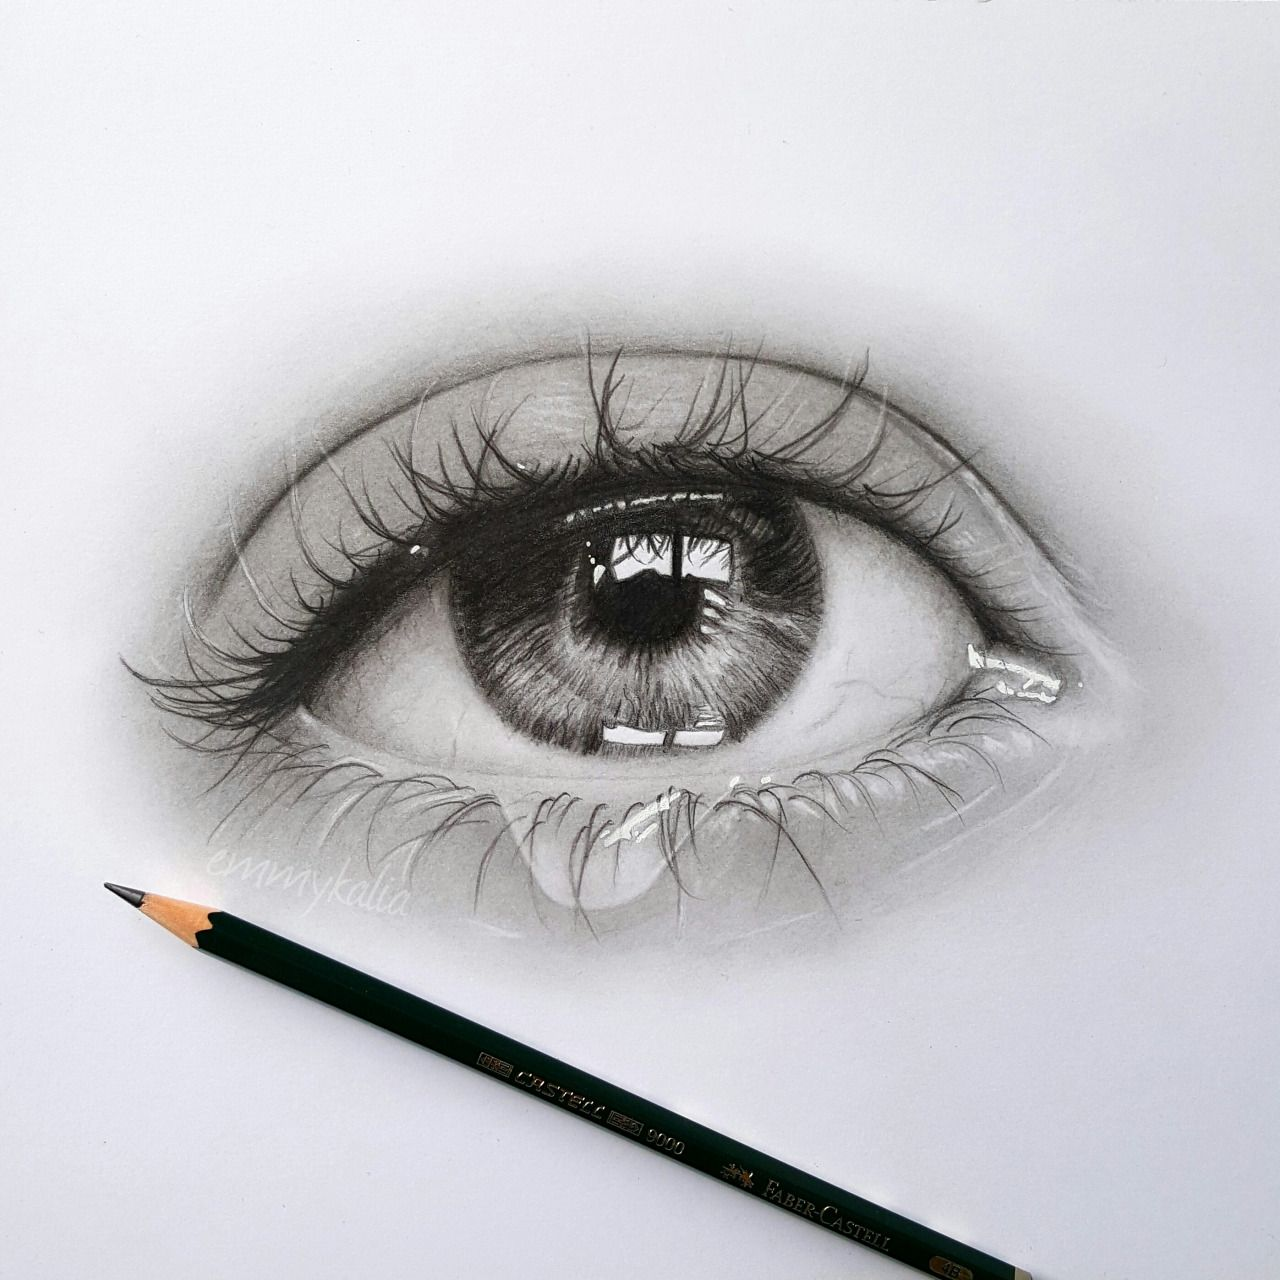 Emmy Kalia Drawing A Realistic Eye With A Teardrop Faber